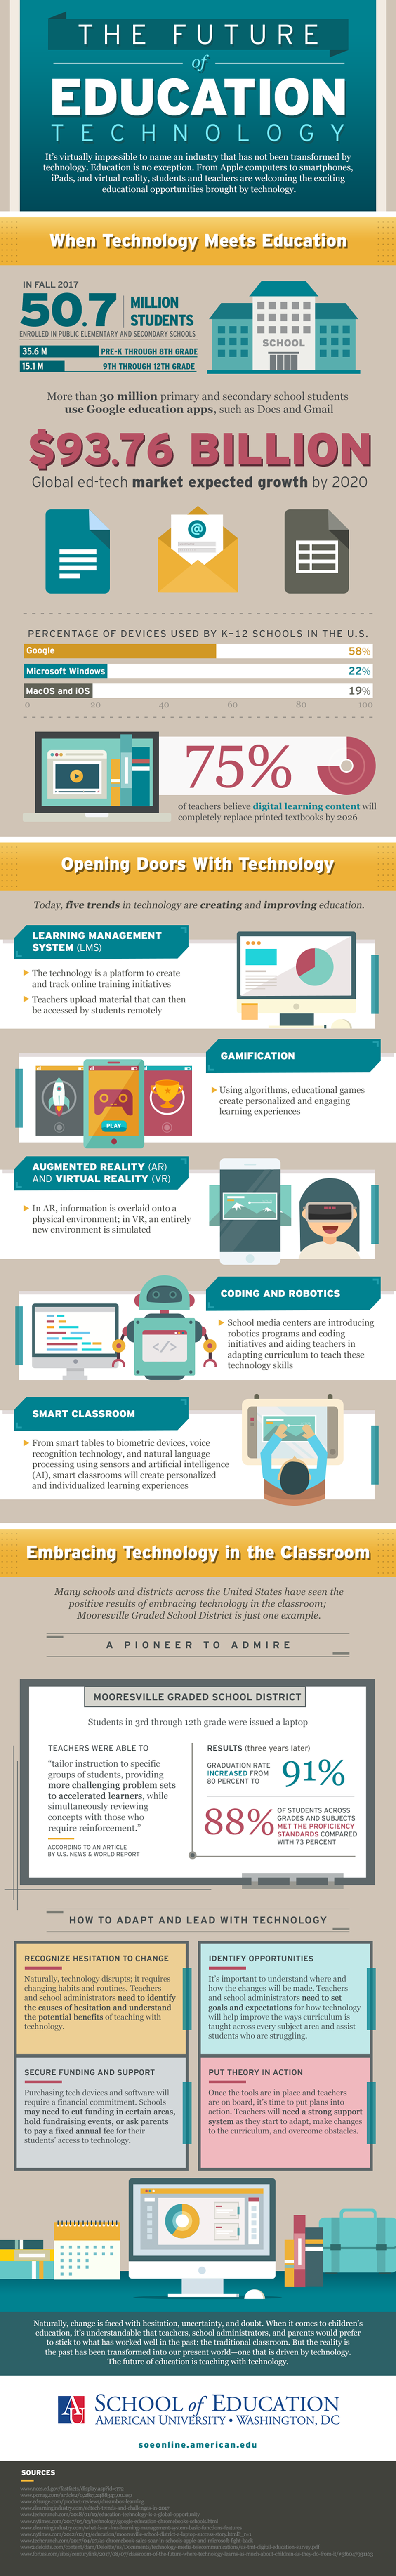 The Future of Education Technology infographic